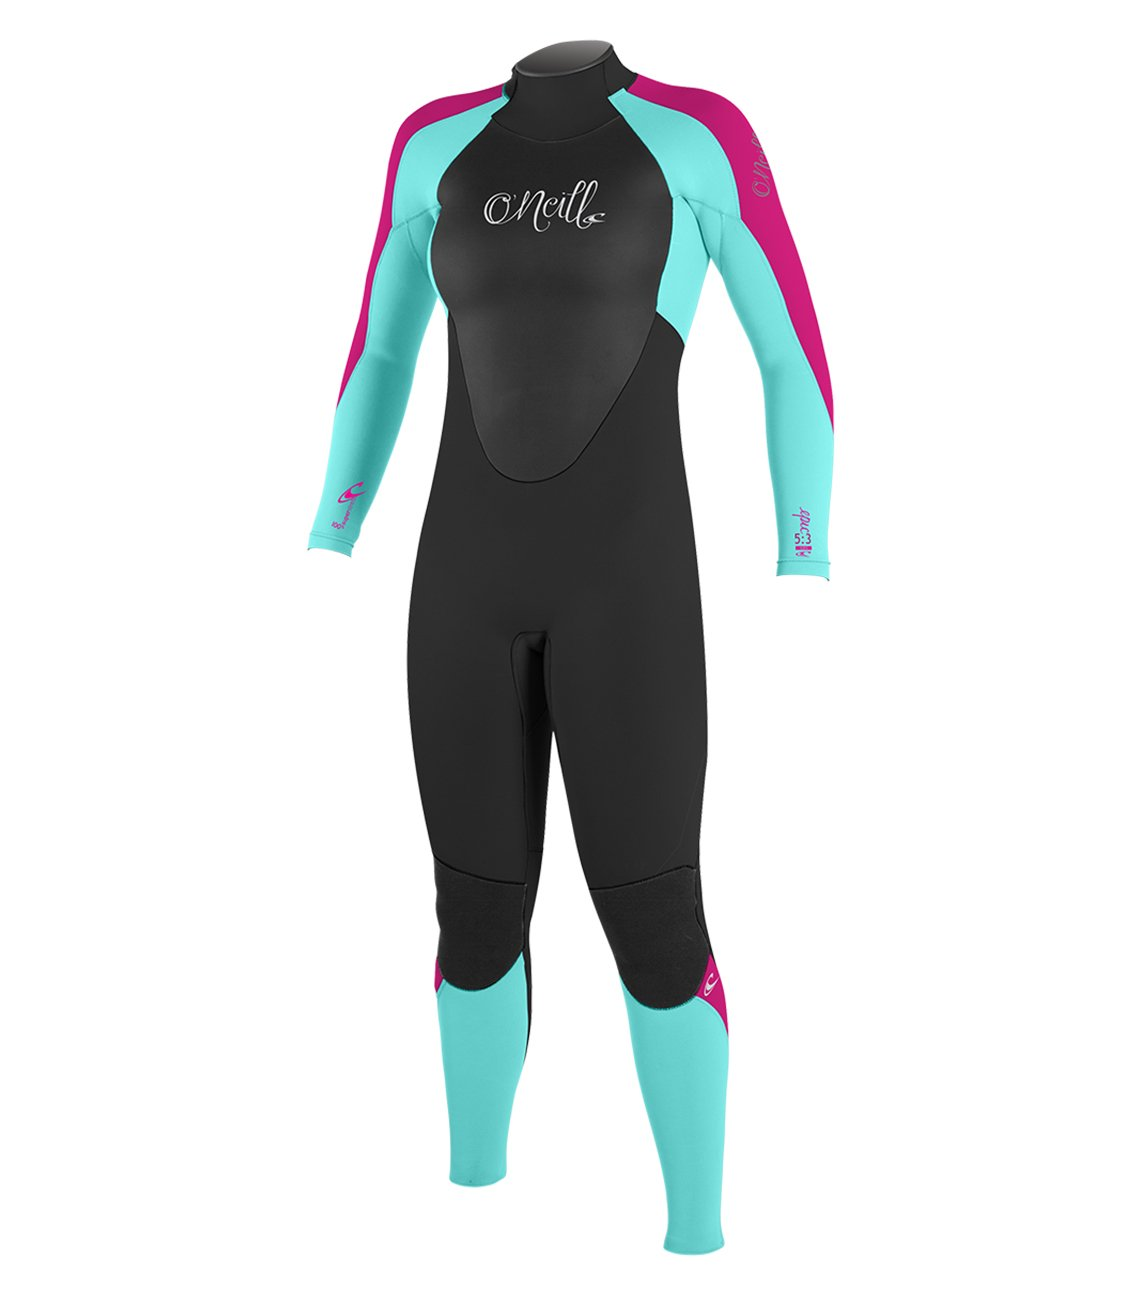 O'Neill Youth Epic 4/3mm Back Zip Full Wetsuit, Black/Sea Glass/Berry, 6 by O'Neill Wetsuits